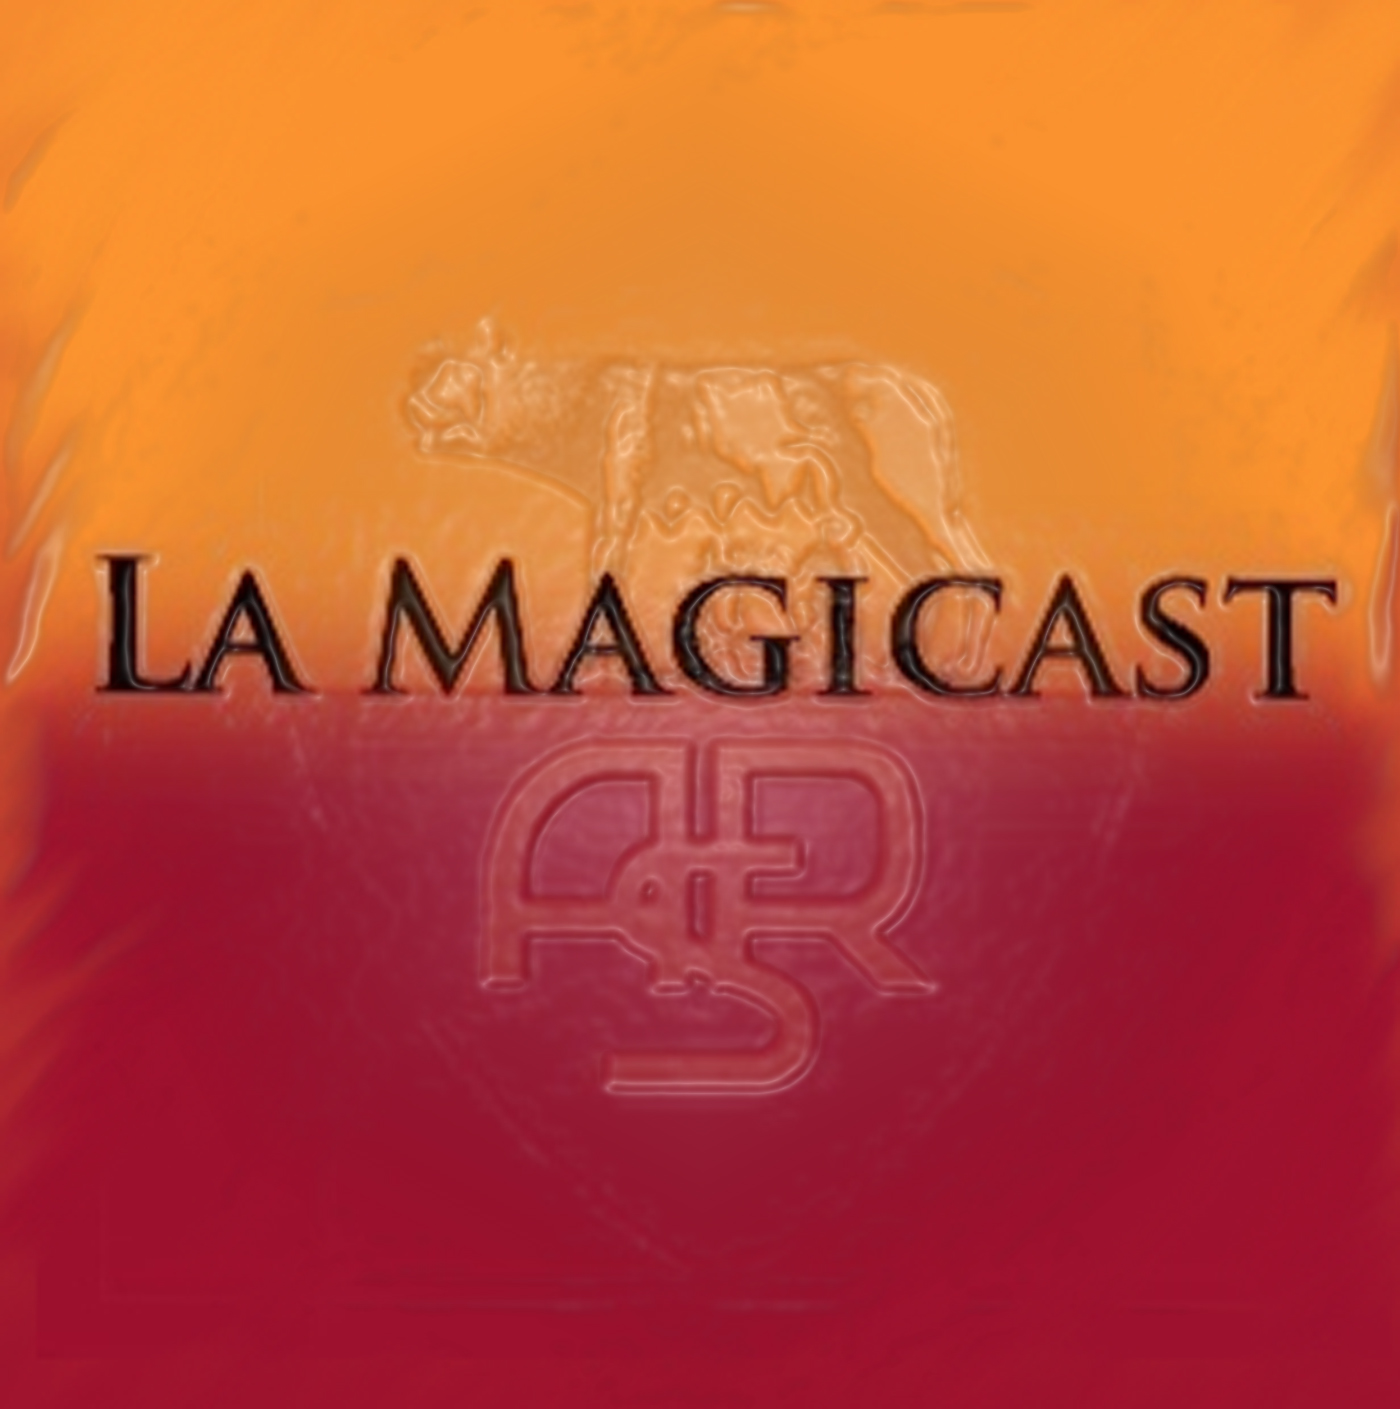 La Magicast – The AS Roma podcast